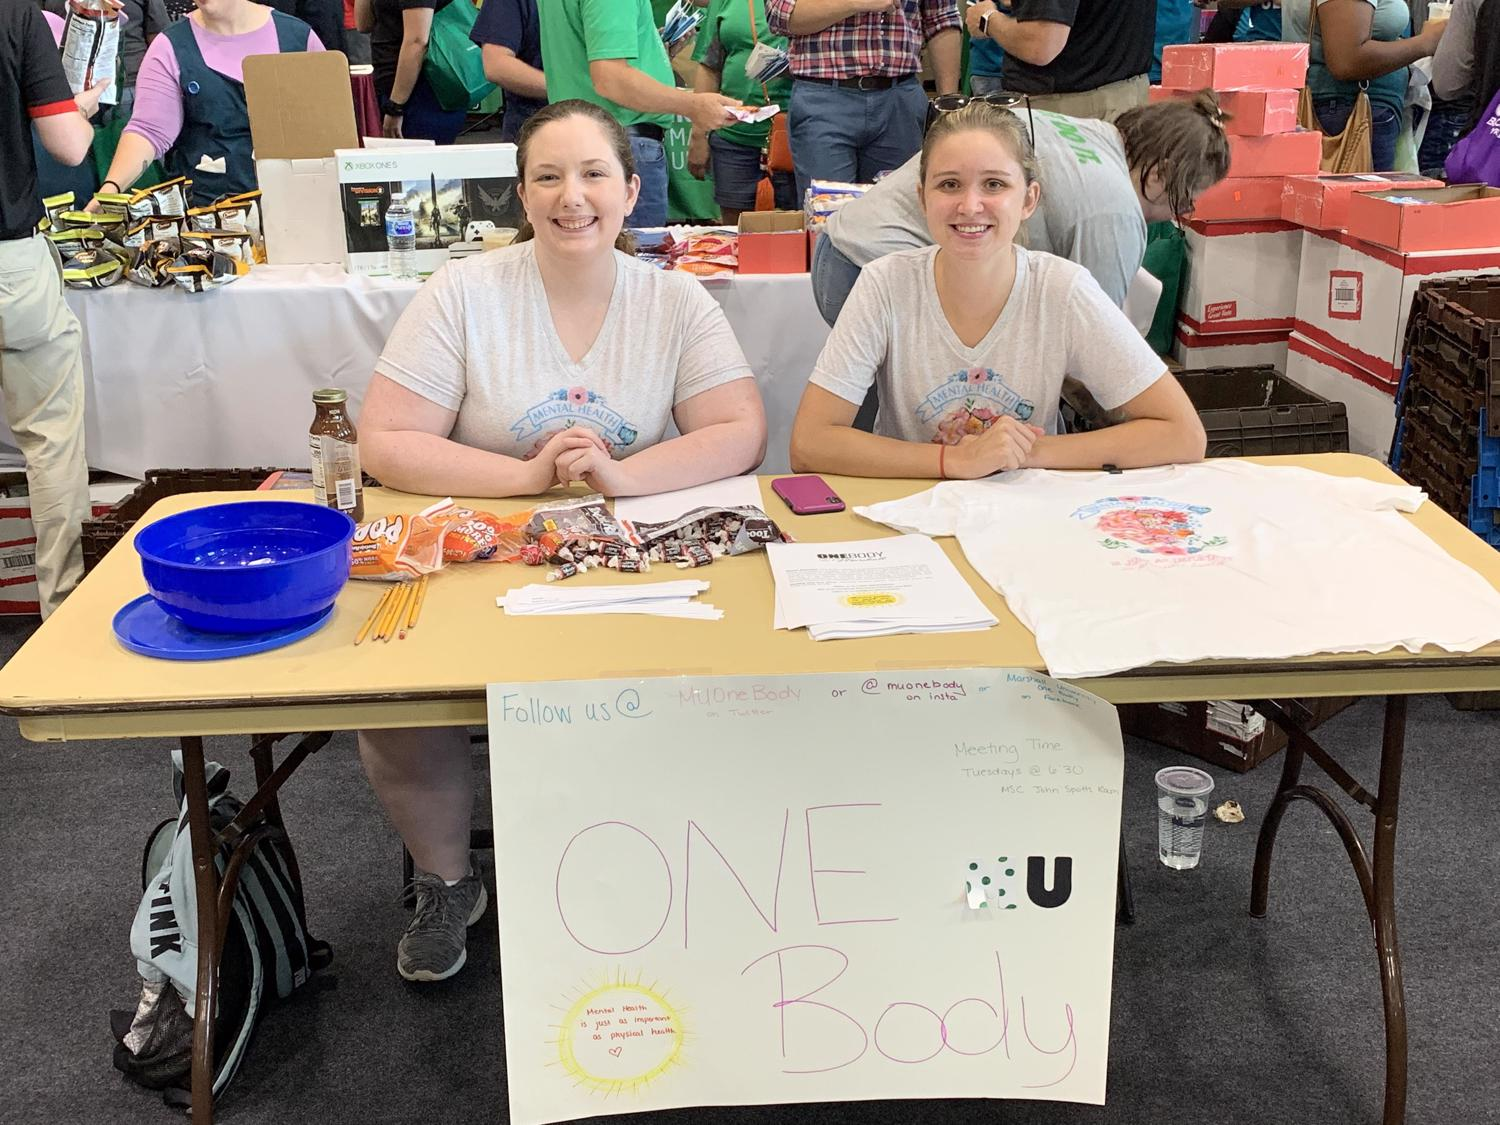 President Jennifer Wallbrown and vice president Courtney Carpenter represent One Body at Recfest 2019.